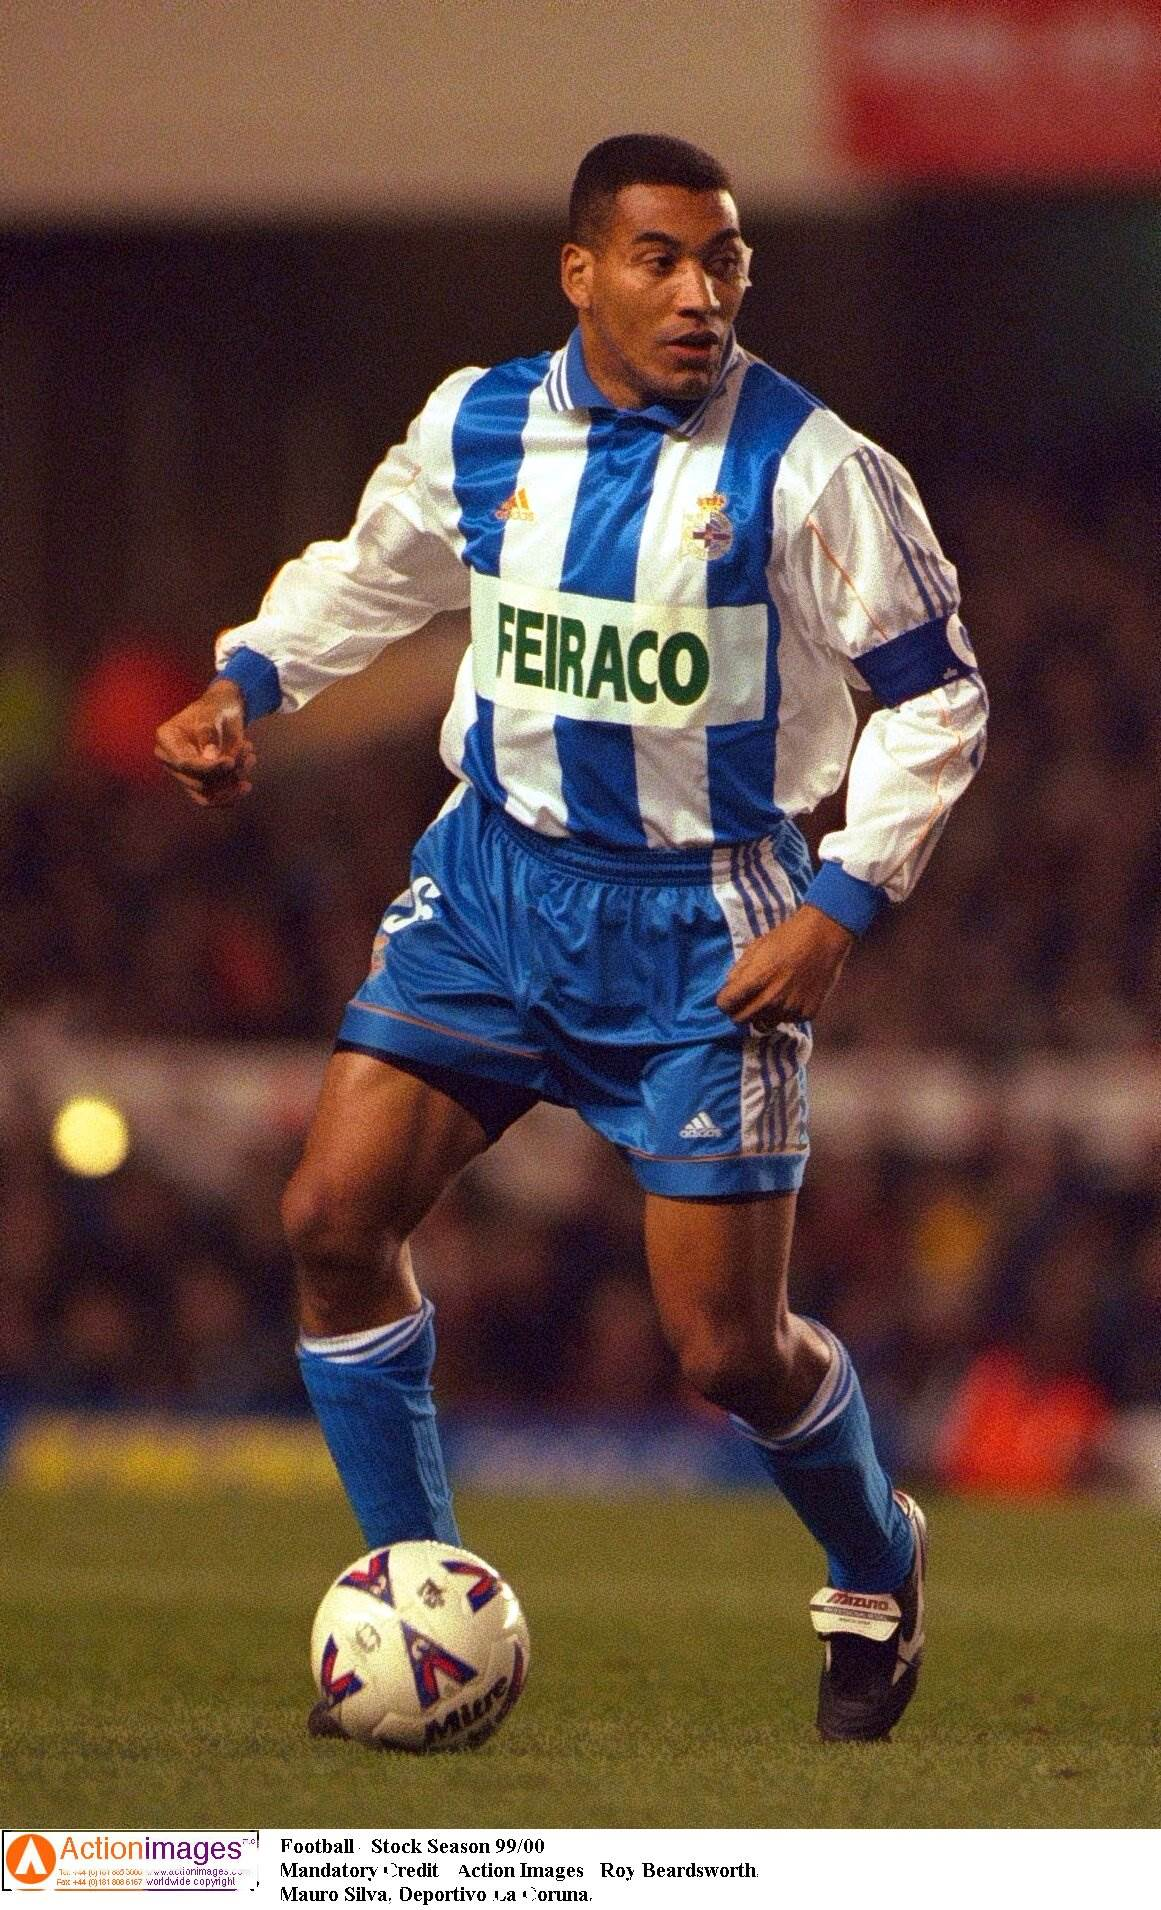 Football - Stock Season 99/00 Mandatory Credit - Action Images / Roy Beardsworth. Mauro Silva, Deportivo La Coruna.